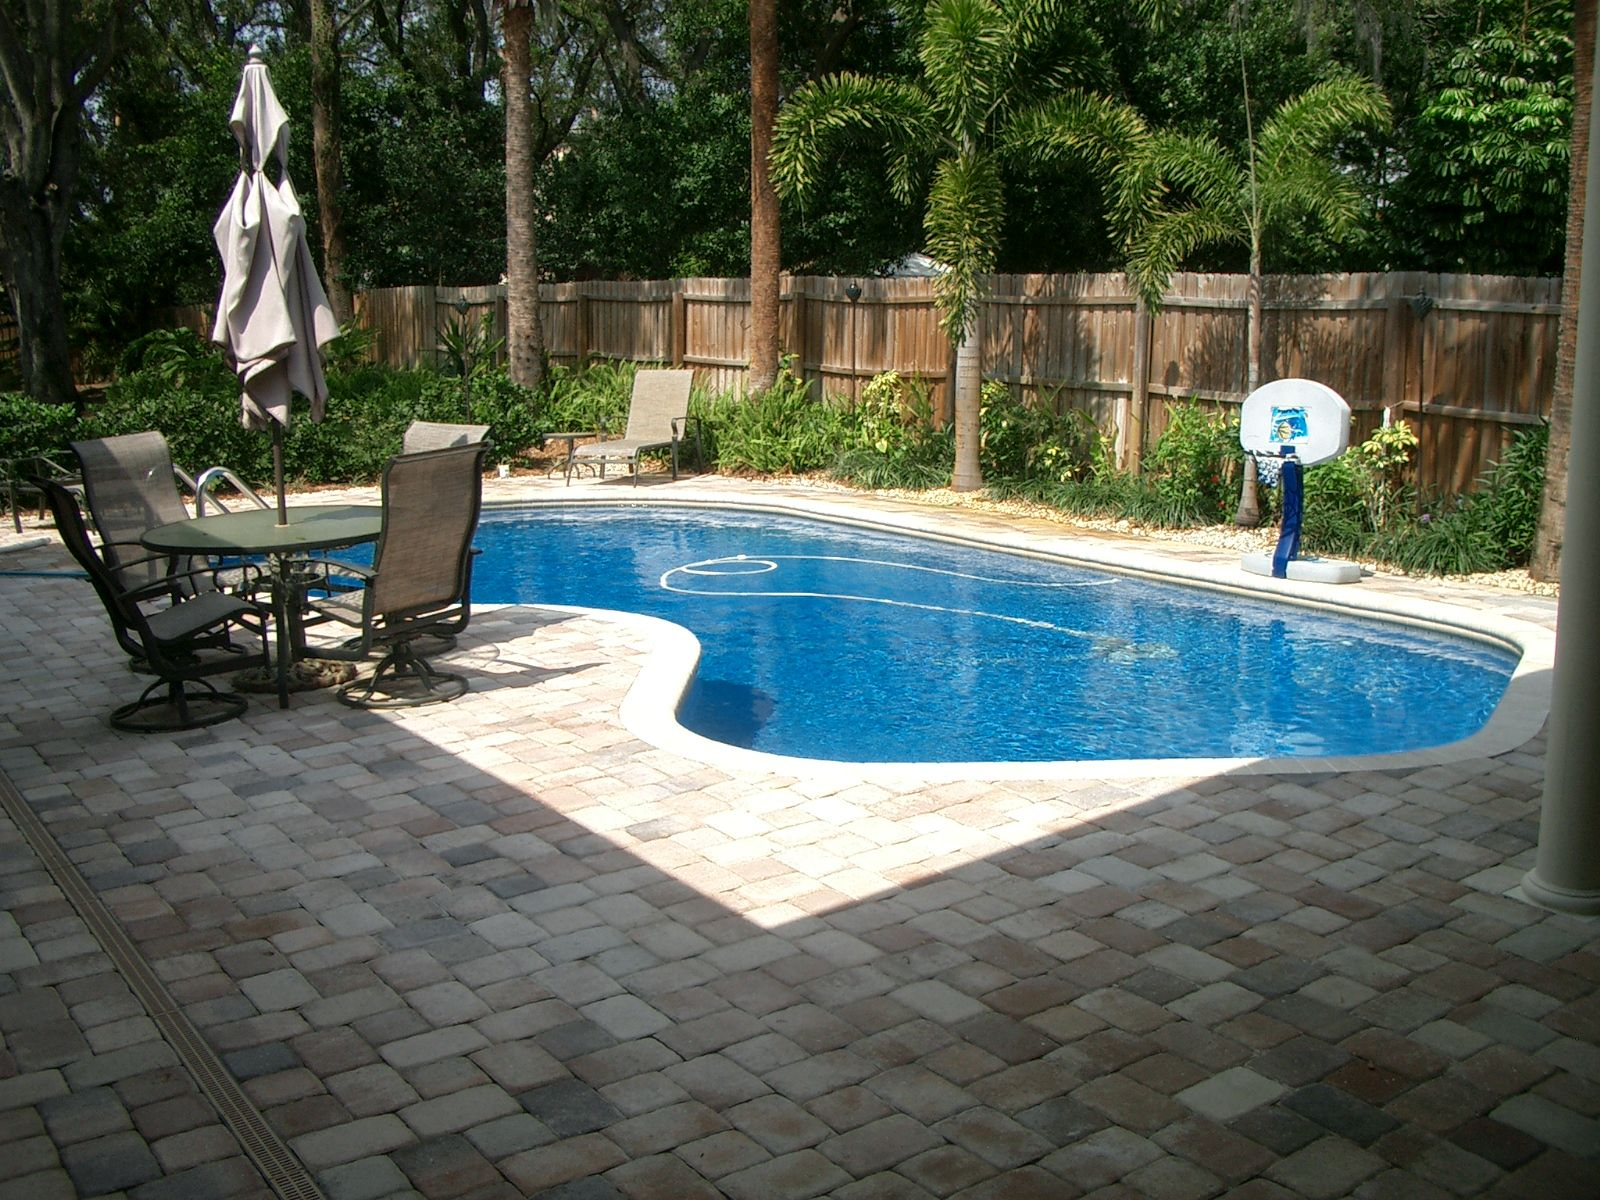 backyard landscaping ideas swimming pool design read more at wwwhomestheticsnet - Pool Designs For Small Backyards